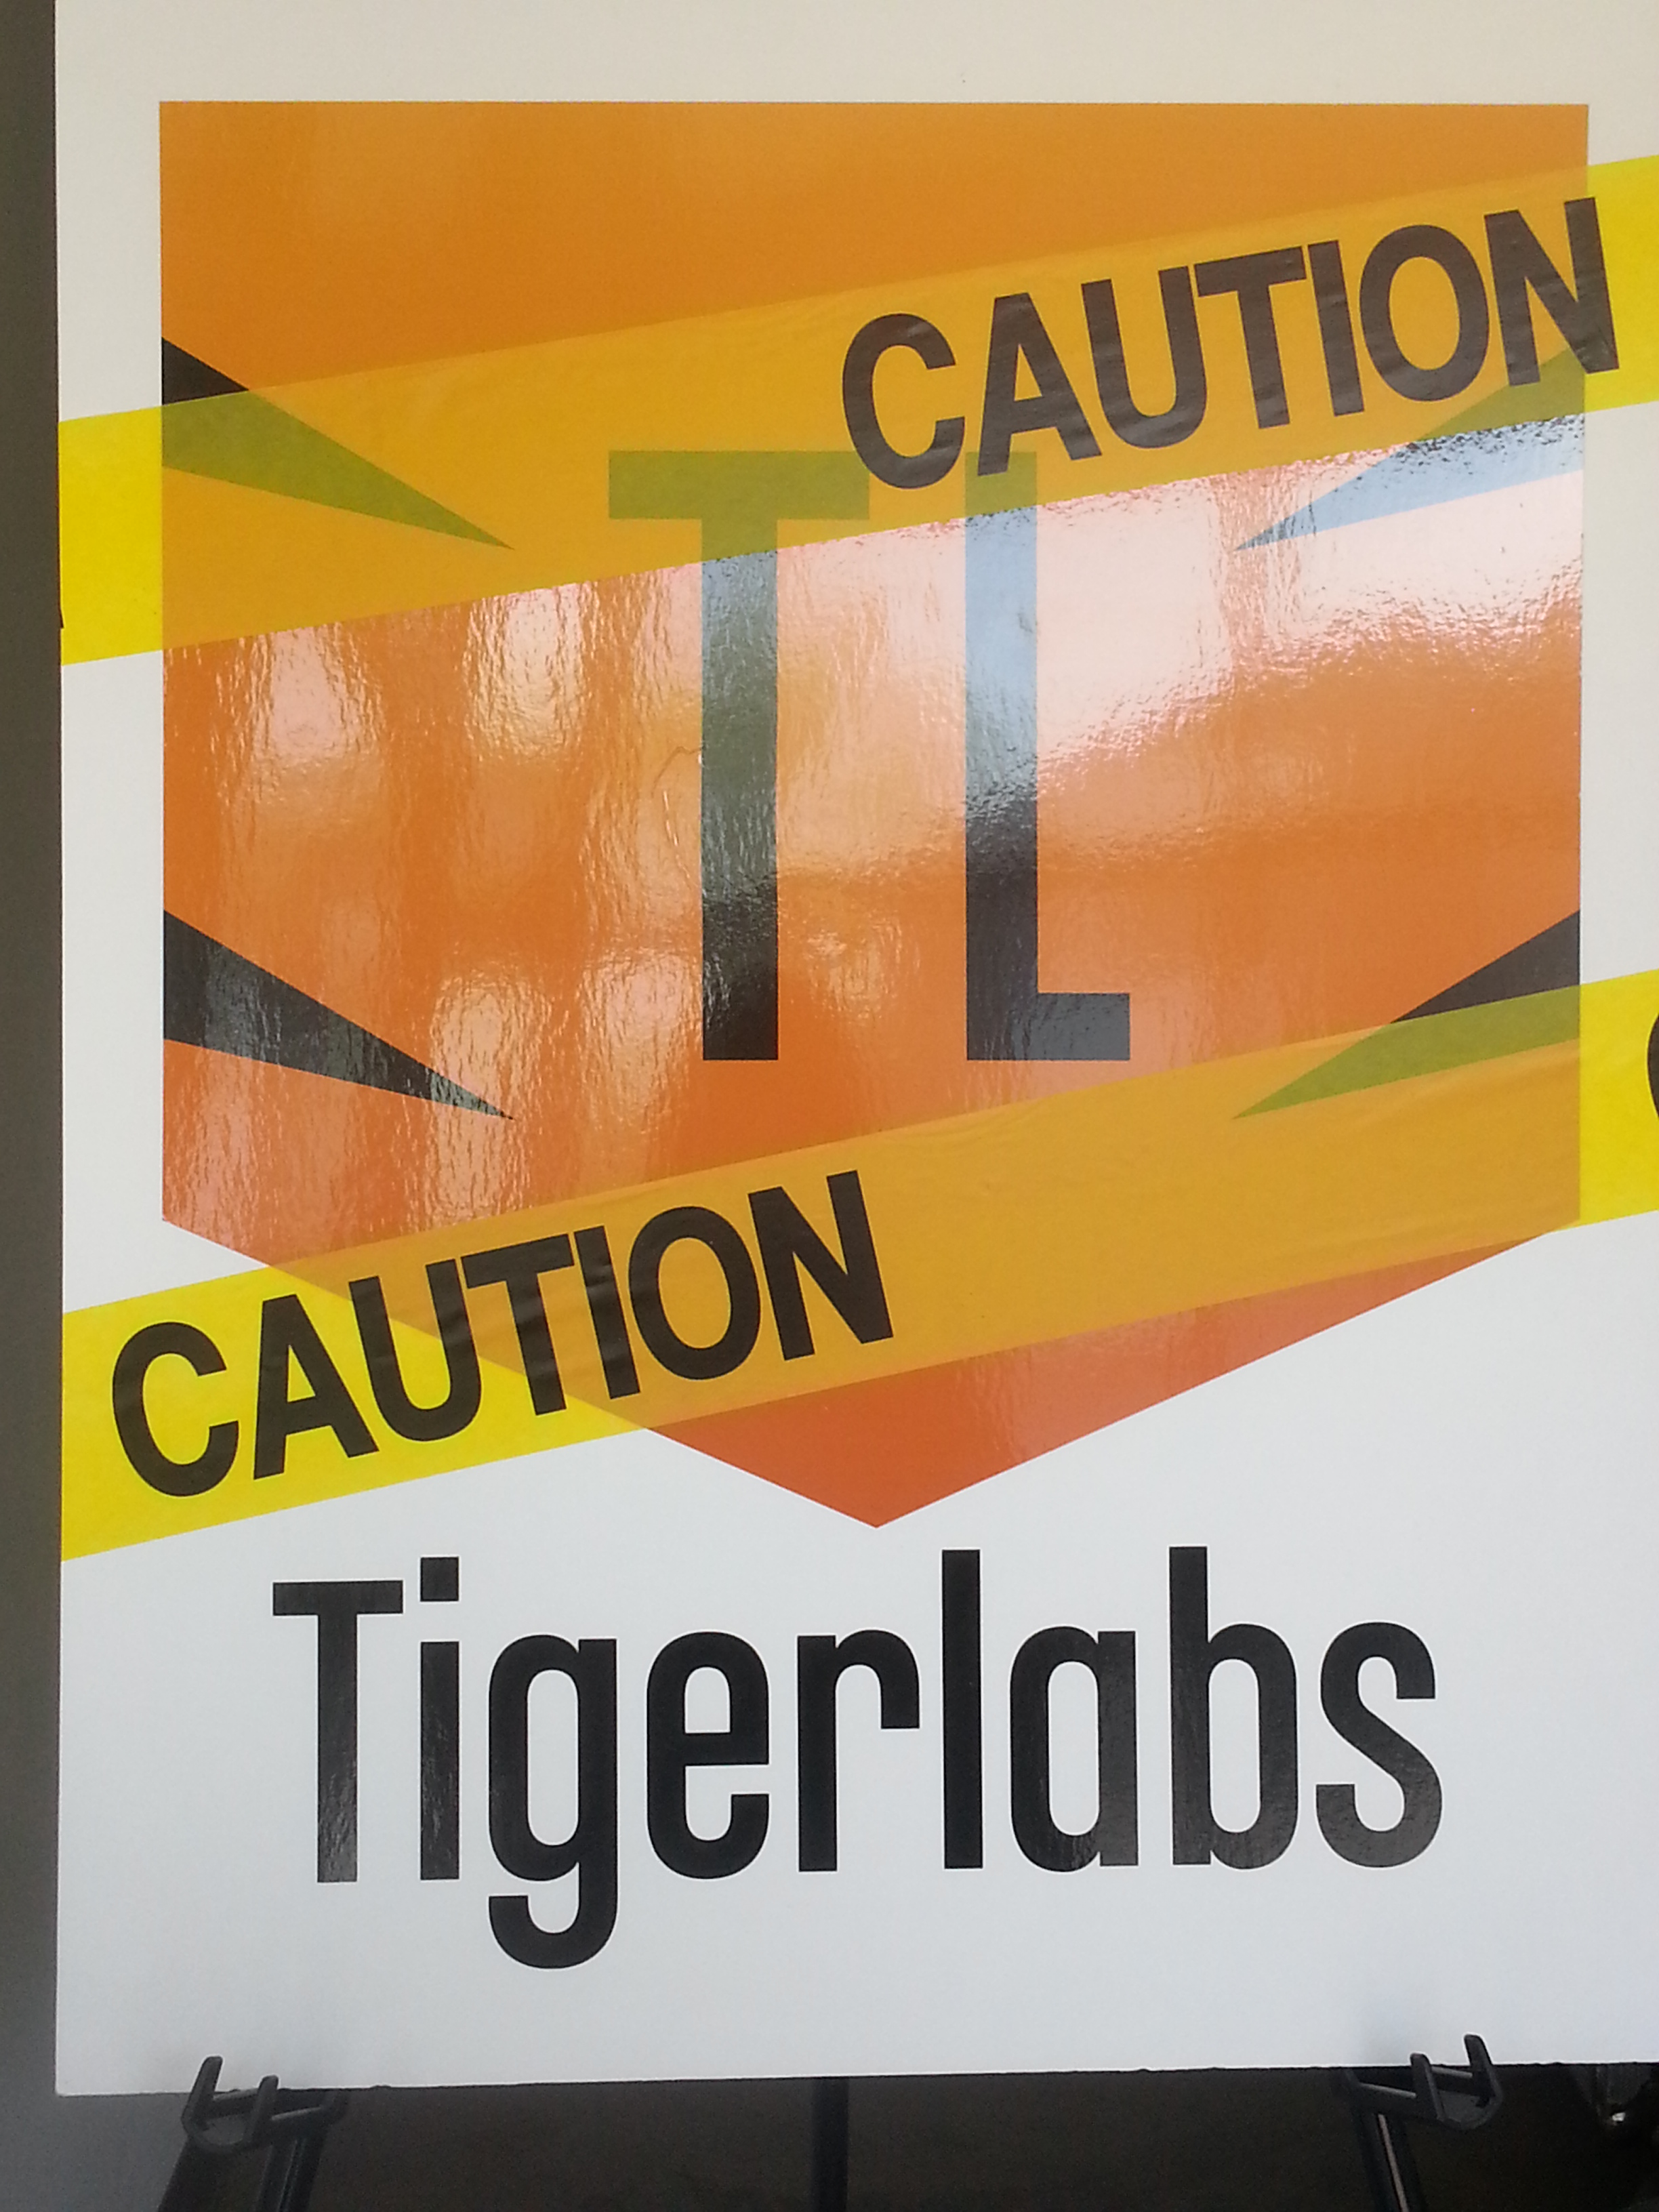 Crowdsourcing for scientists, caregiver portal among Tigerlabs health IT accelerator grads